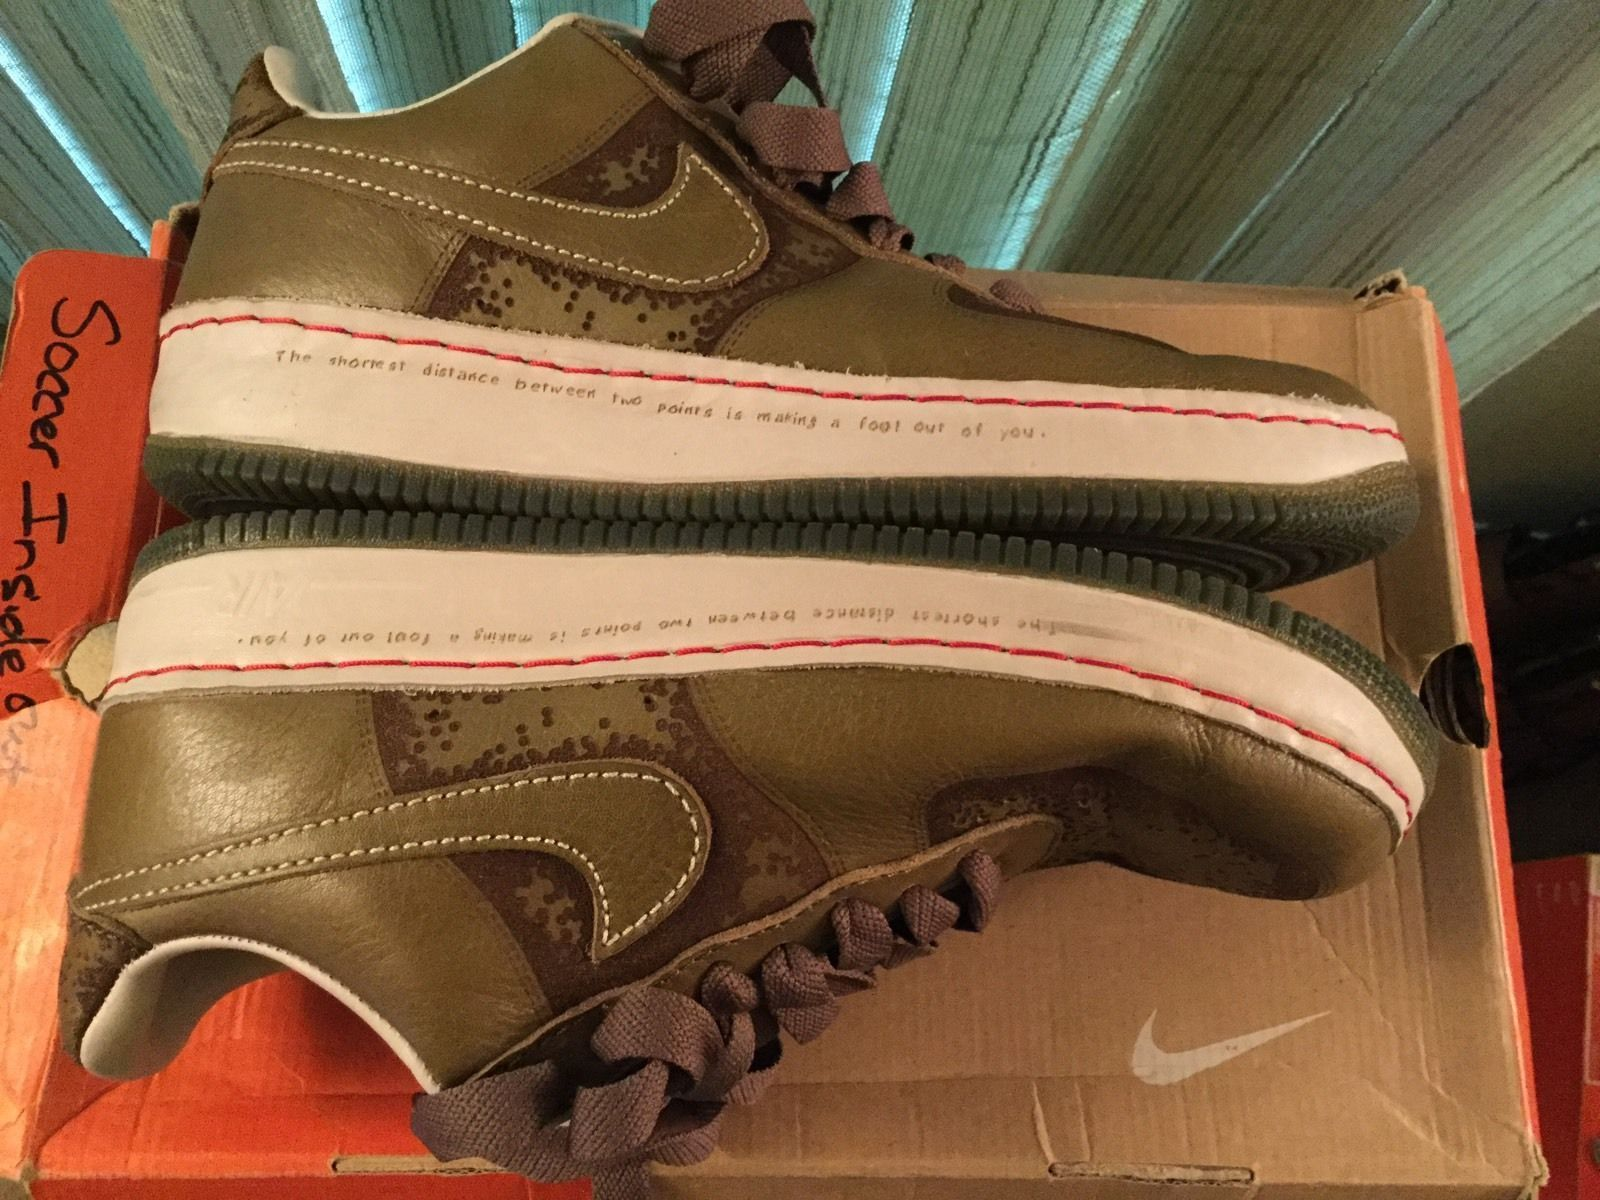 Nike air force 1 mid premium thanksgiving sold out - Men S Nike Air Force 1 Low Io 1 Piece Size 11 Pilgrim Pilgrim Pre Owned